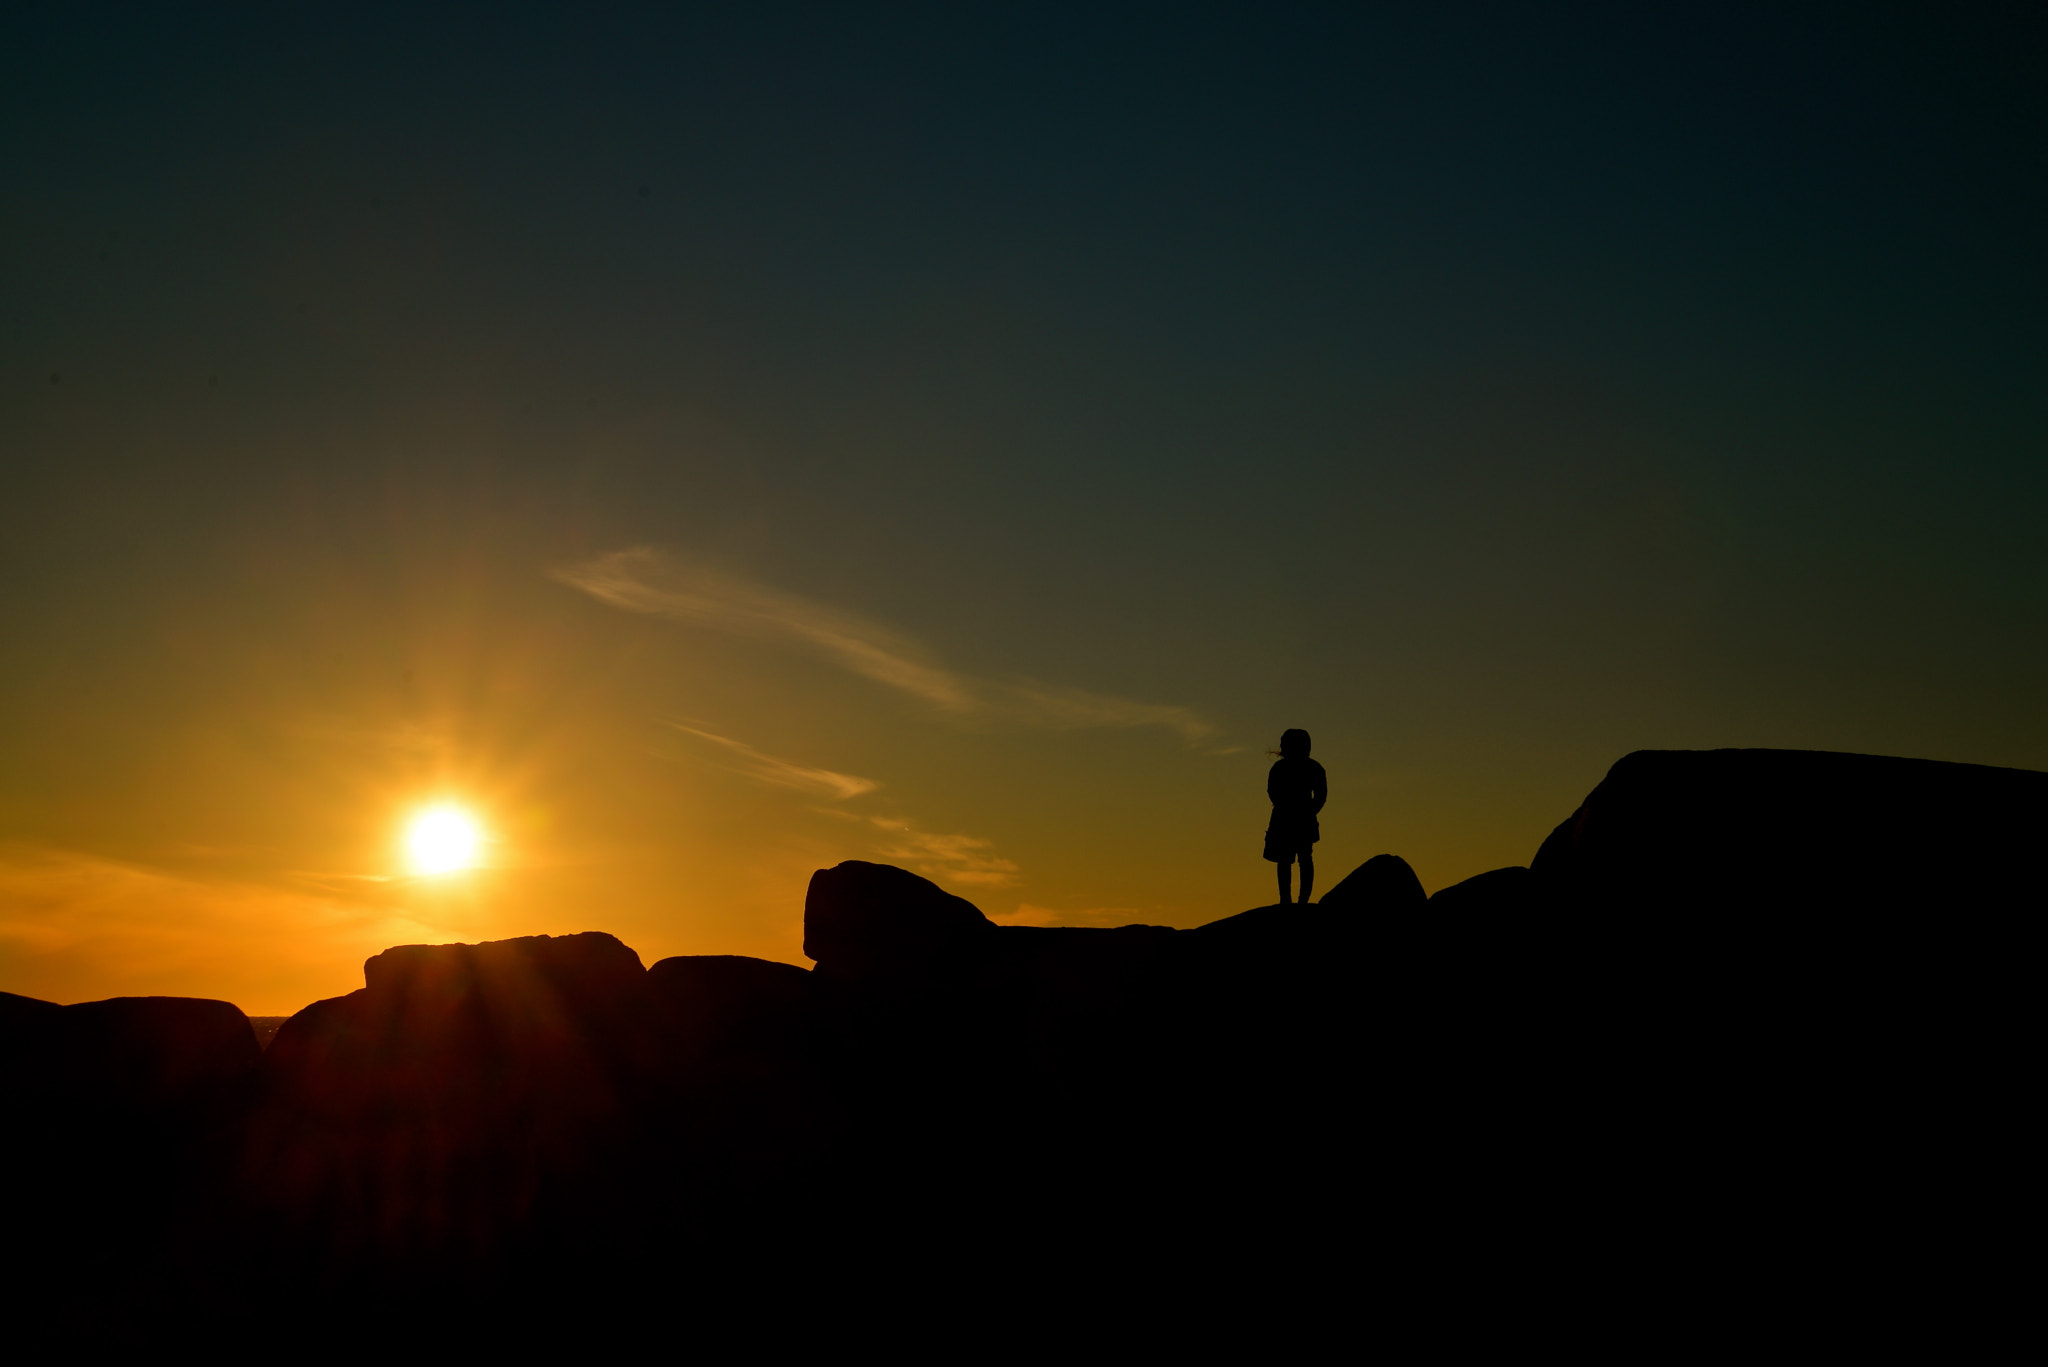 Photograph Sunset at Peggys Cove by JaBig on 500px